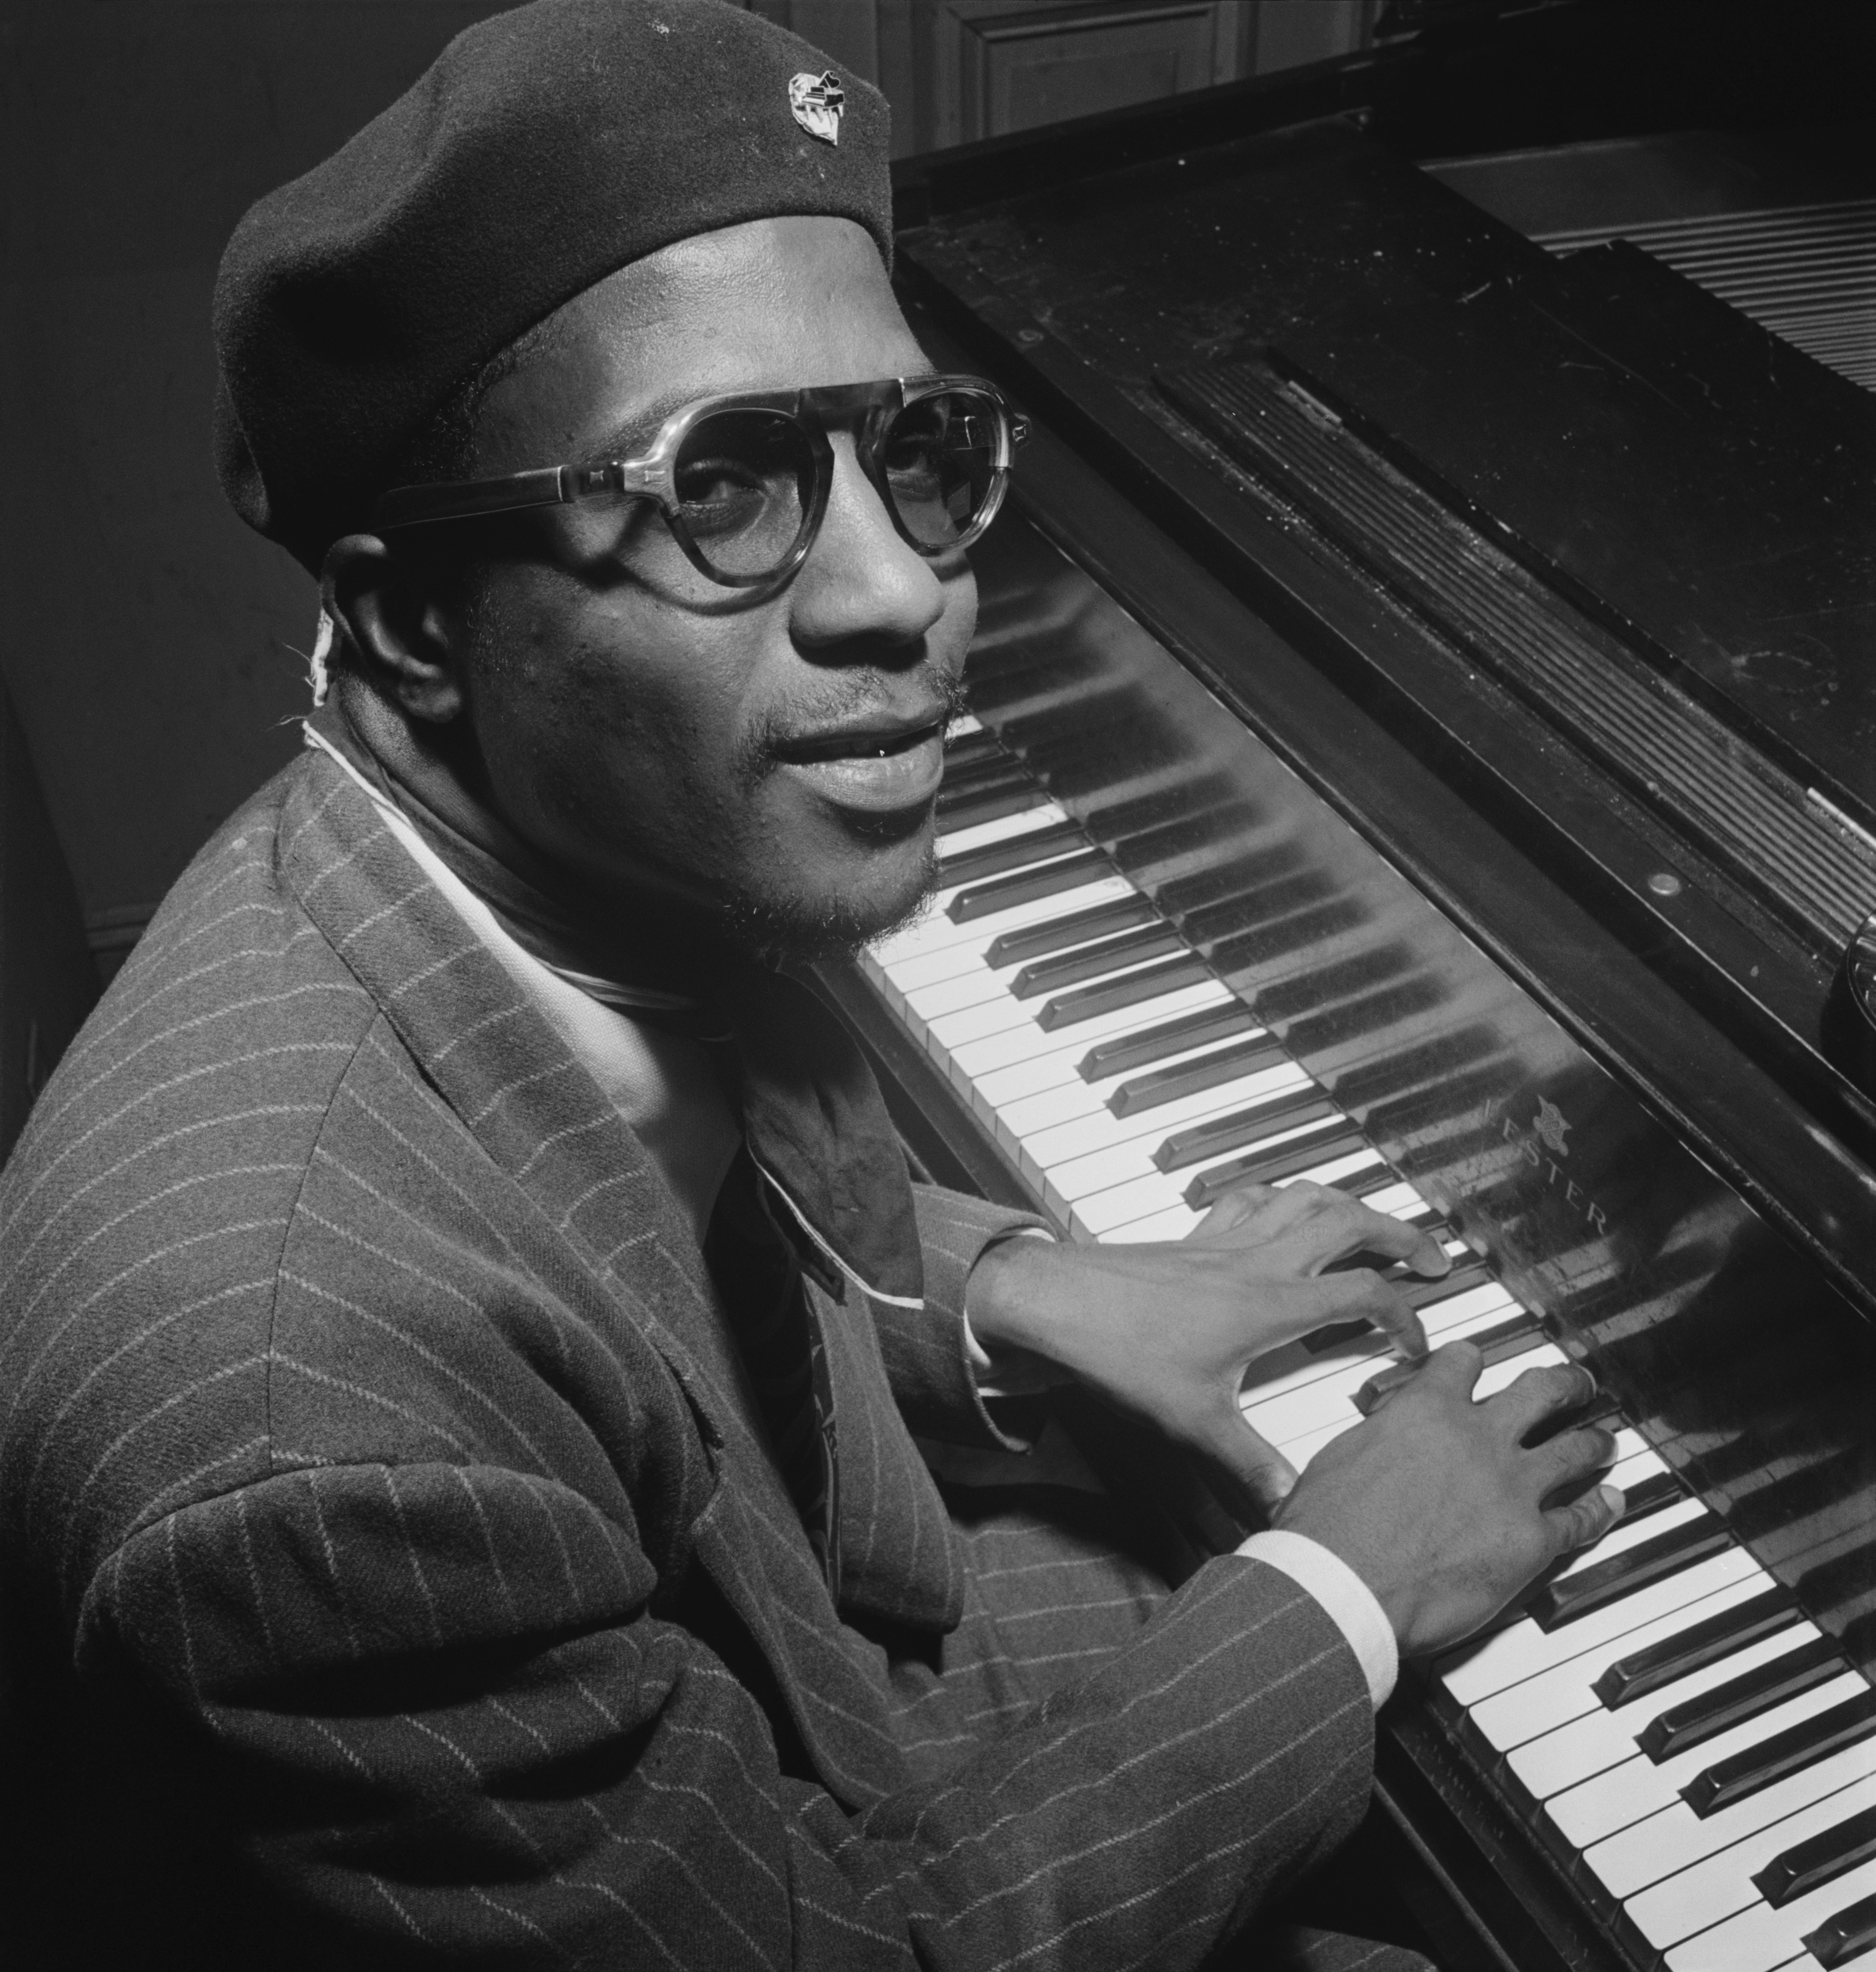 Depiction of Thelonious Monk